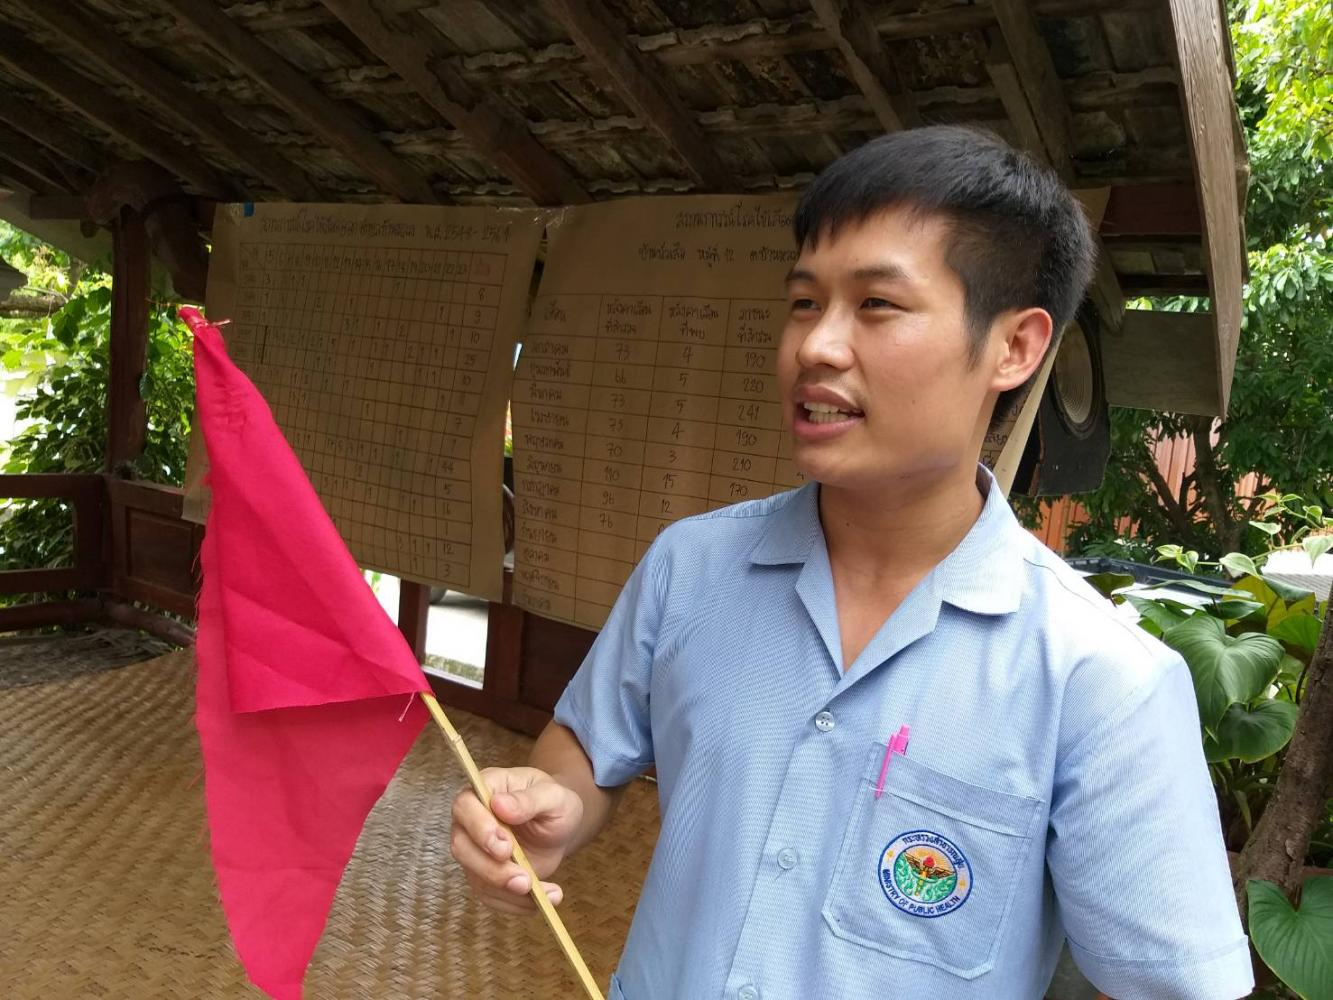 Ekkasit Wongtharahas, a health promotion employee, shows a red flag used to fight the spread of dengue fever in tambon Ban Luang of Chiang Mai. (Photo by Onnucha Hutasingh)